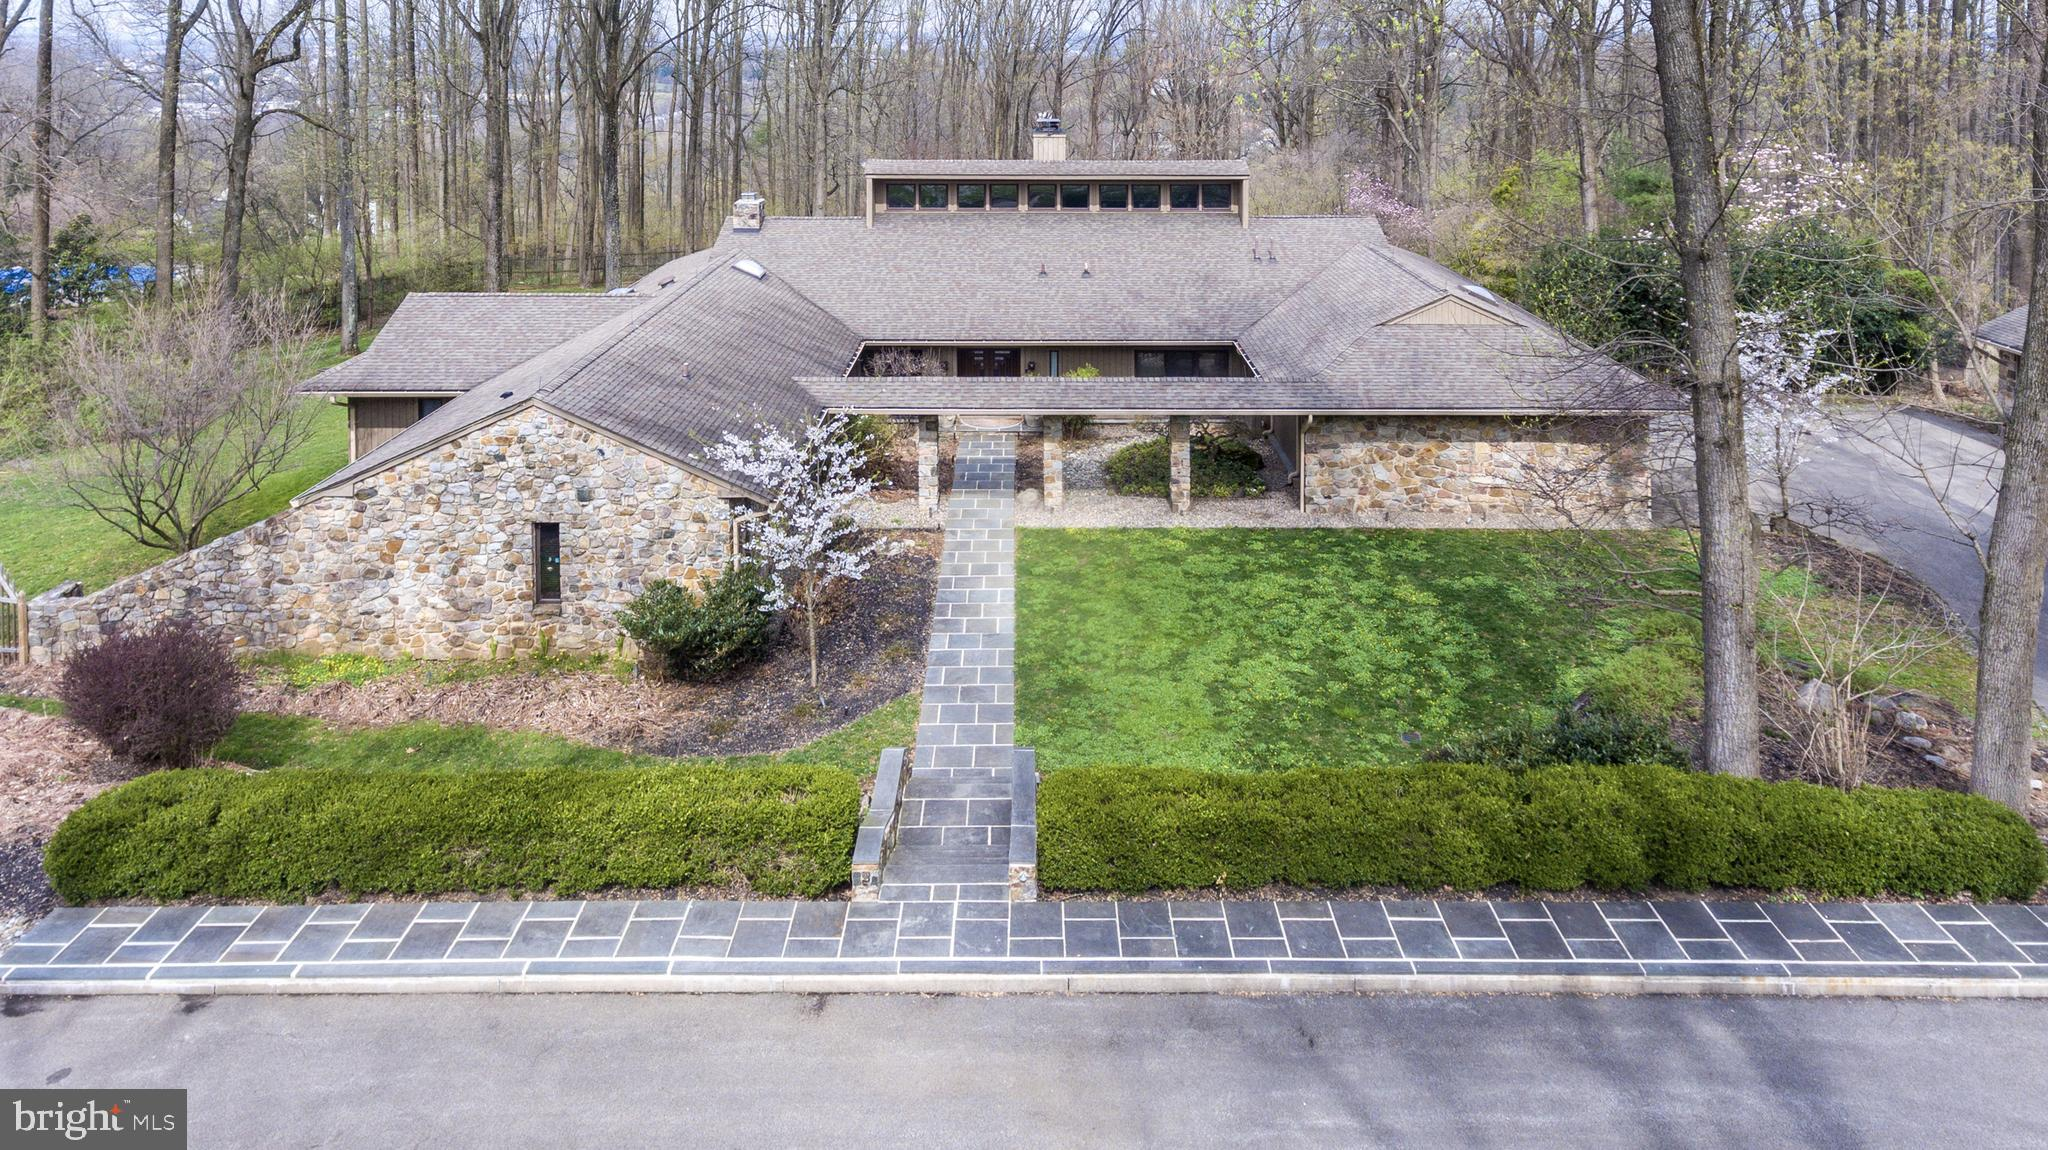 627 HARTS RIDGE ROAD, CONSHOHOCKEN, PA 19428